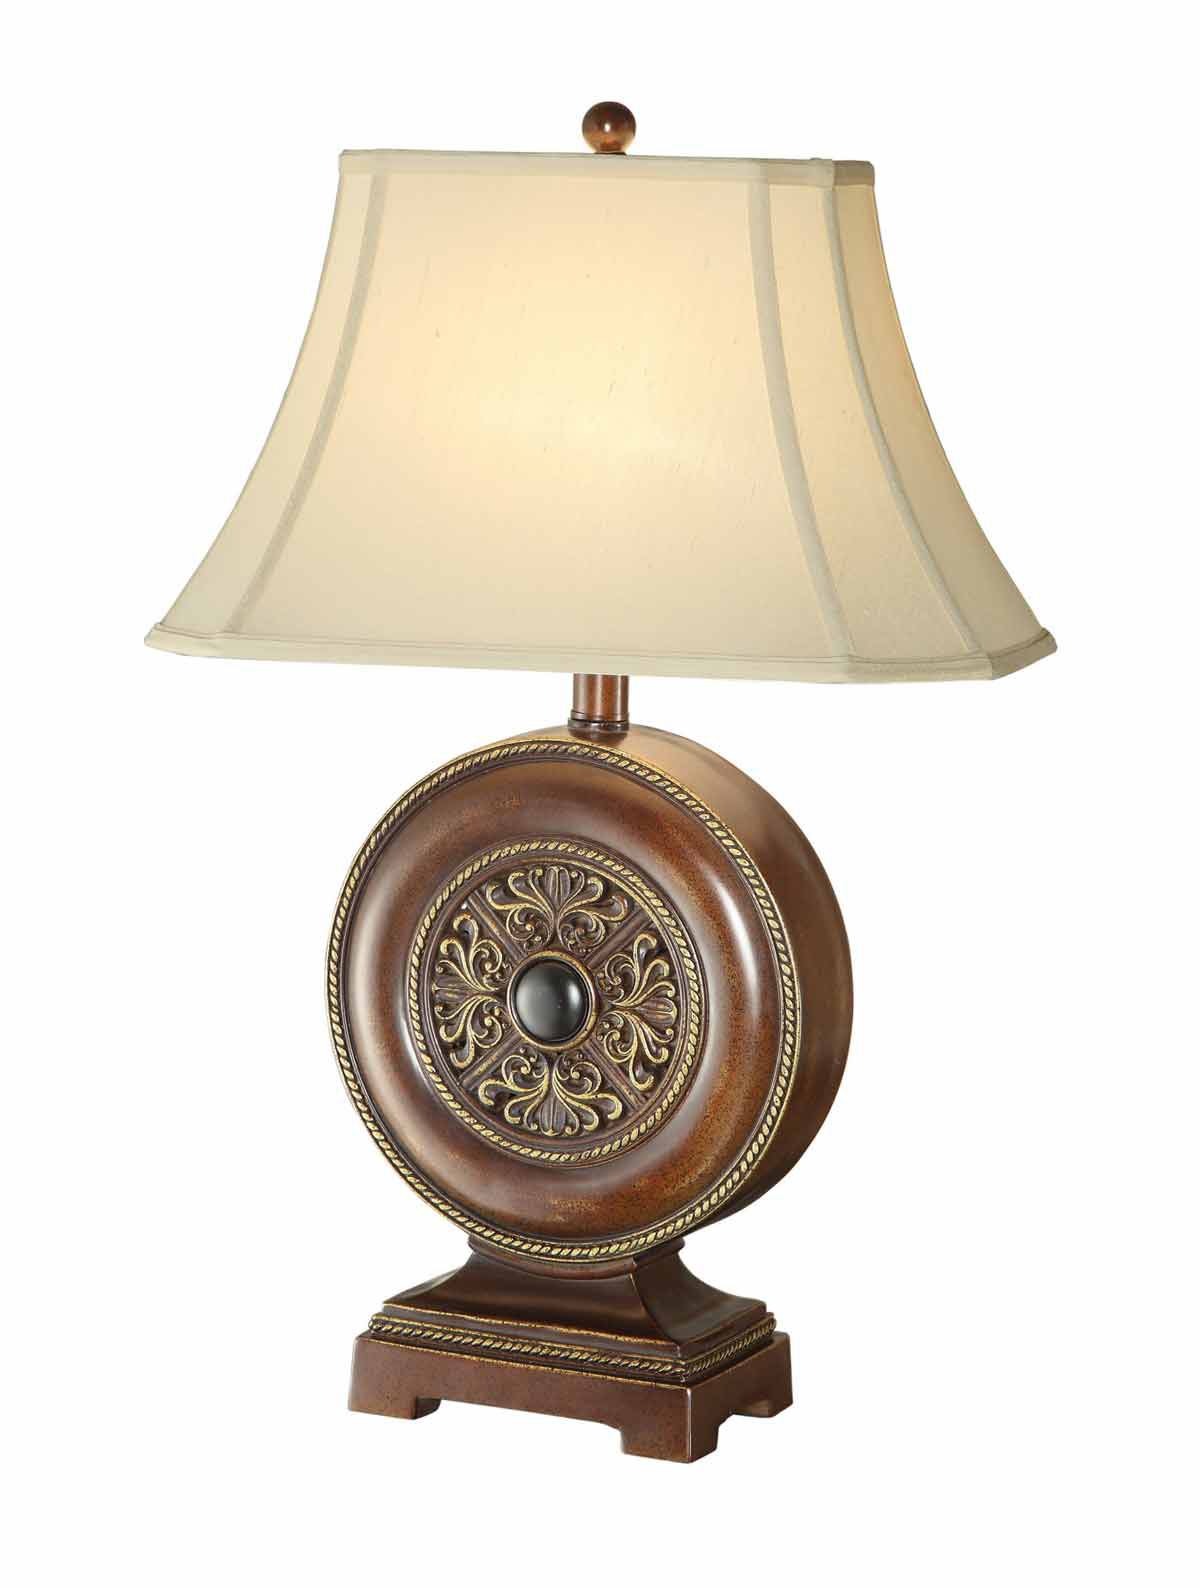 Coaster 901334 Table Lamp - Brown